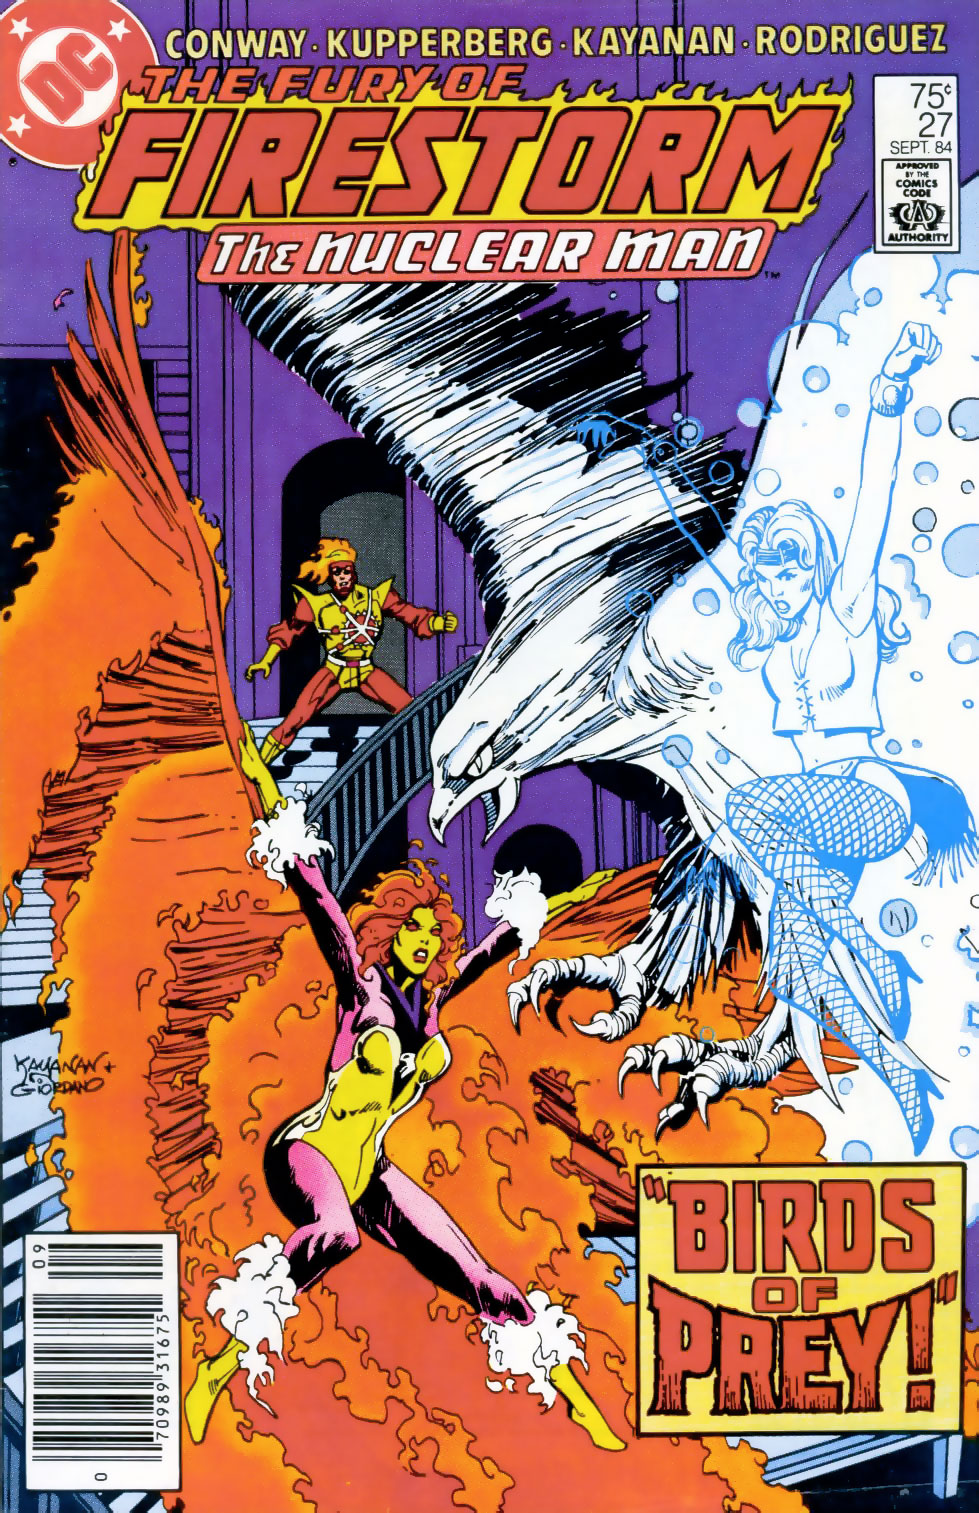 Fury of Firestorm #27 cover by Rafael Kayanan and Dick Giordano